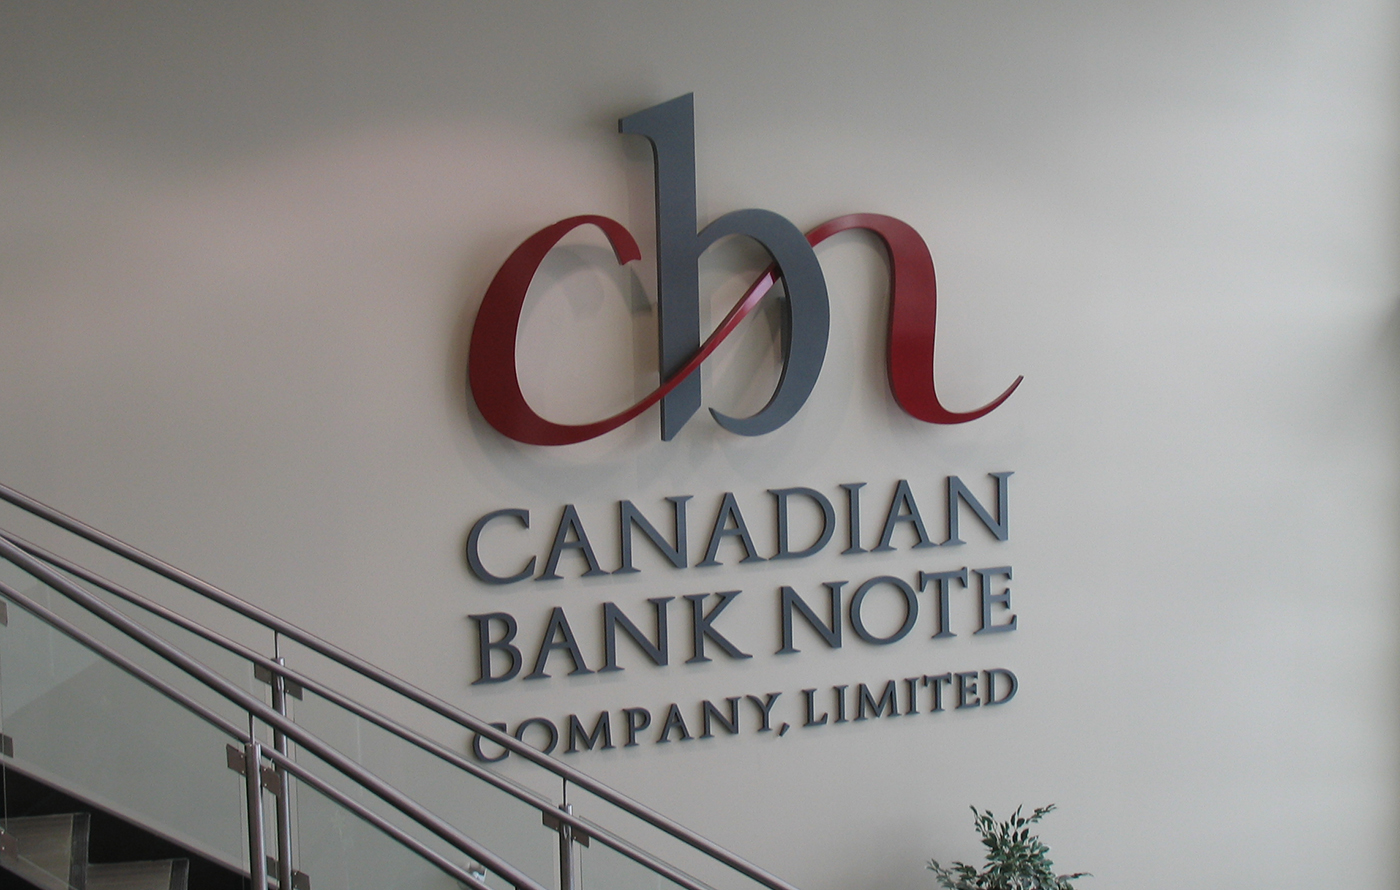 nexus signs ab vehicle business directory centre sign calgary interior wraps signage